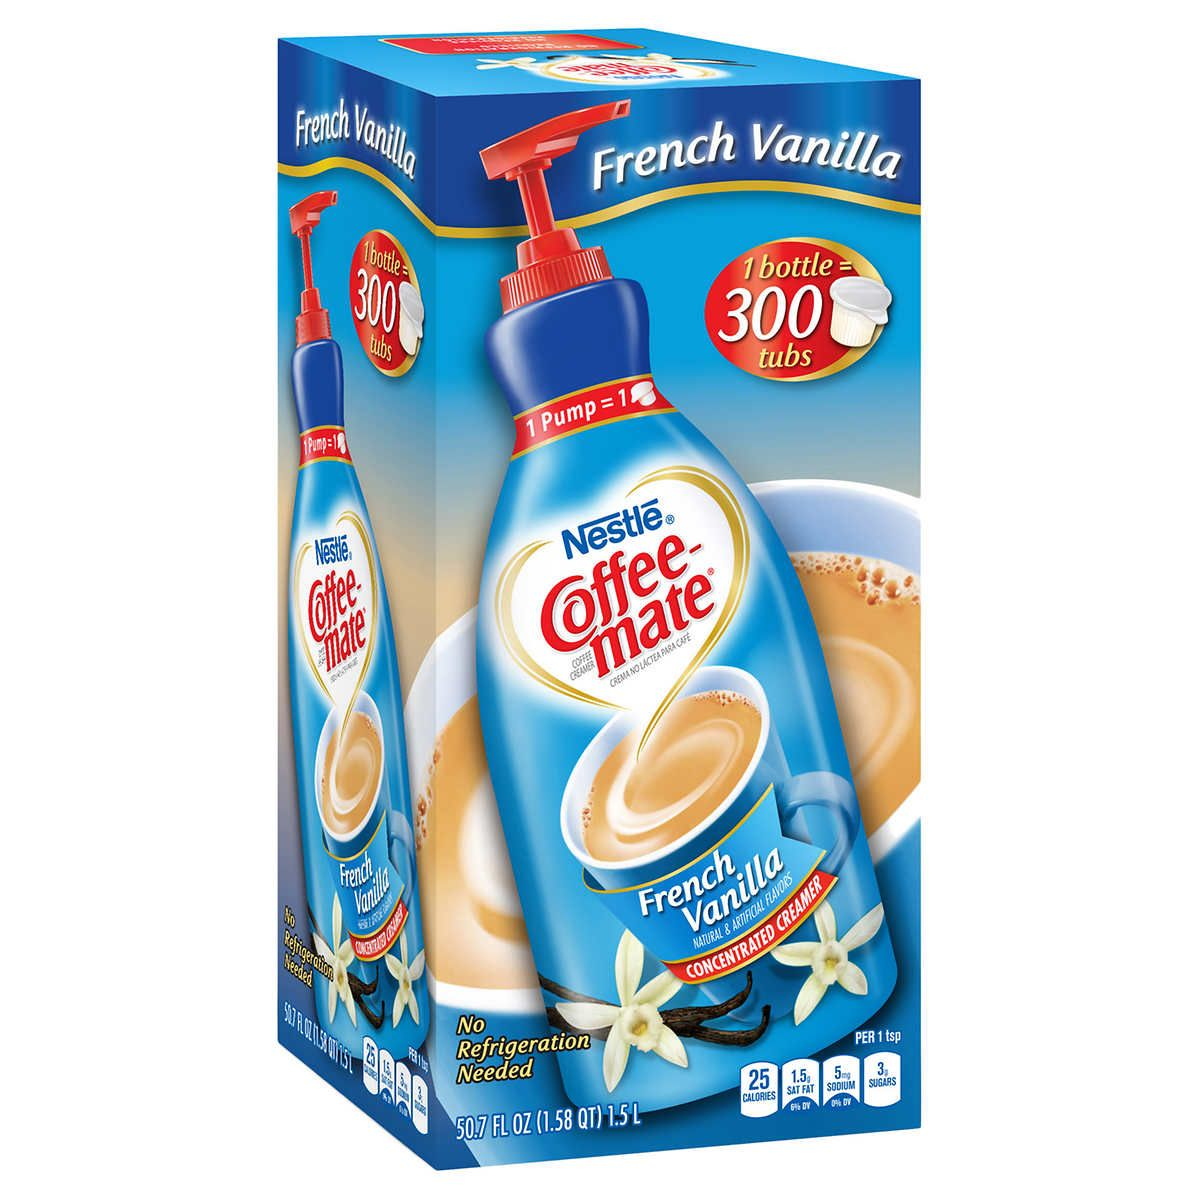 Nestlé Coffeemate Coffee Creamer, French Vanilla, Pump